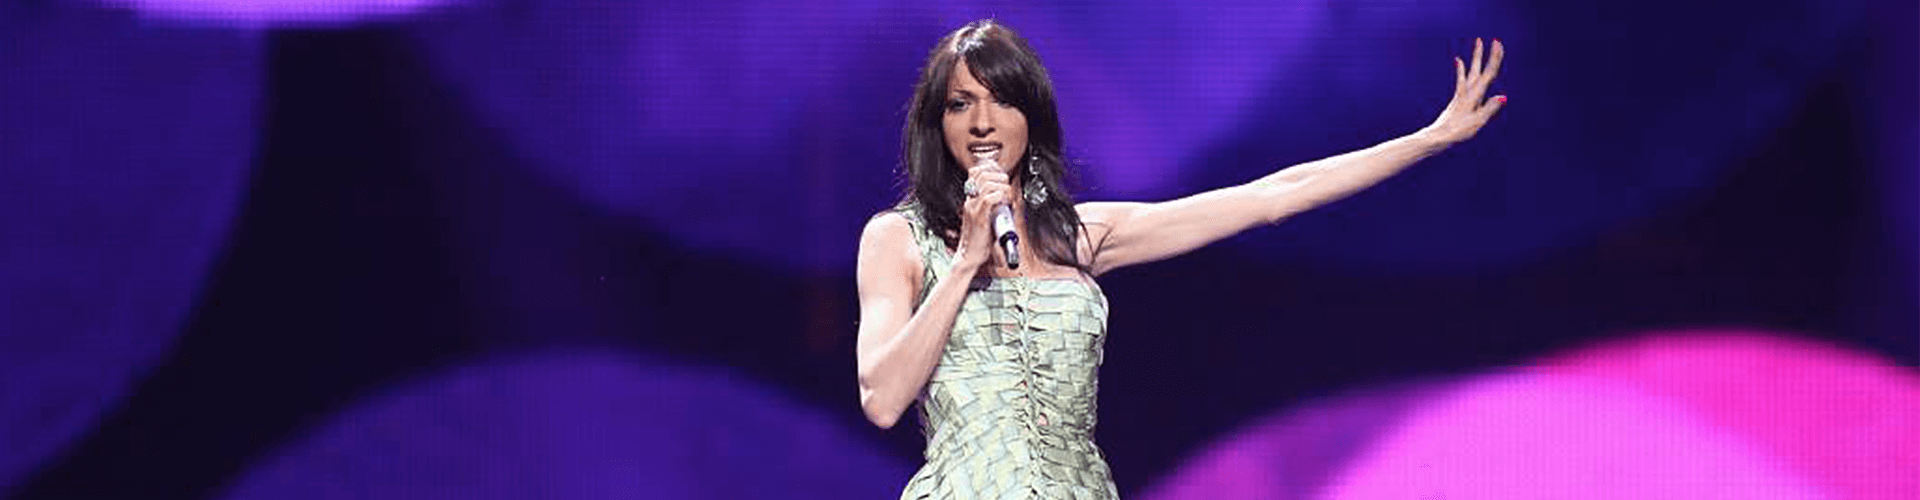 Eurovision stars – where are they now?